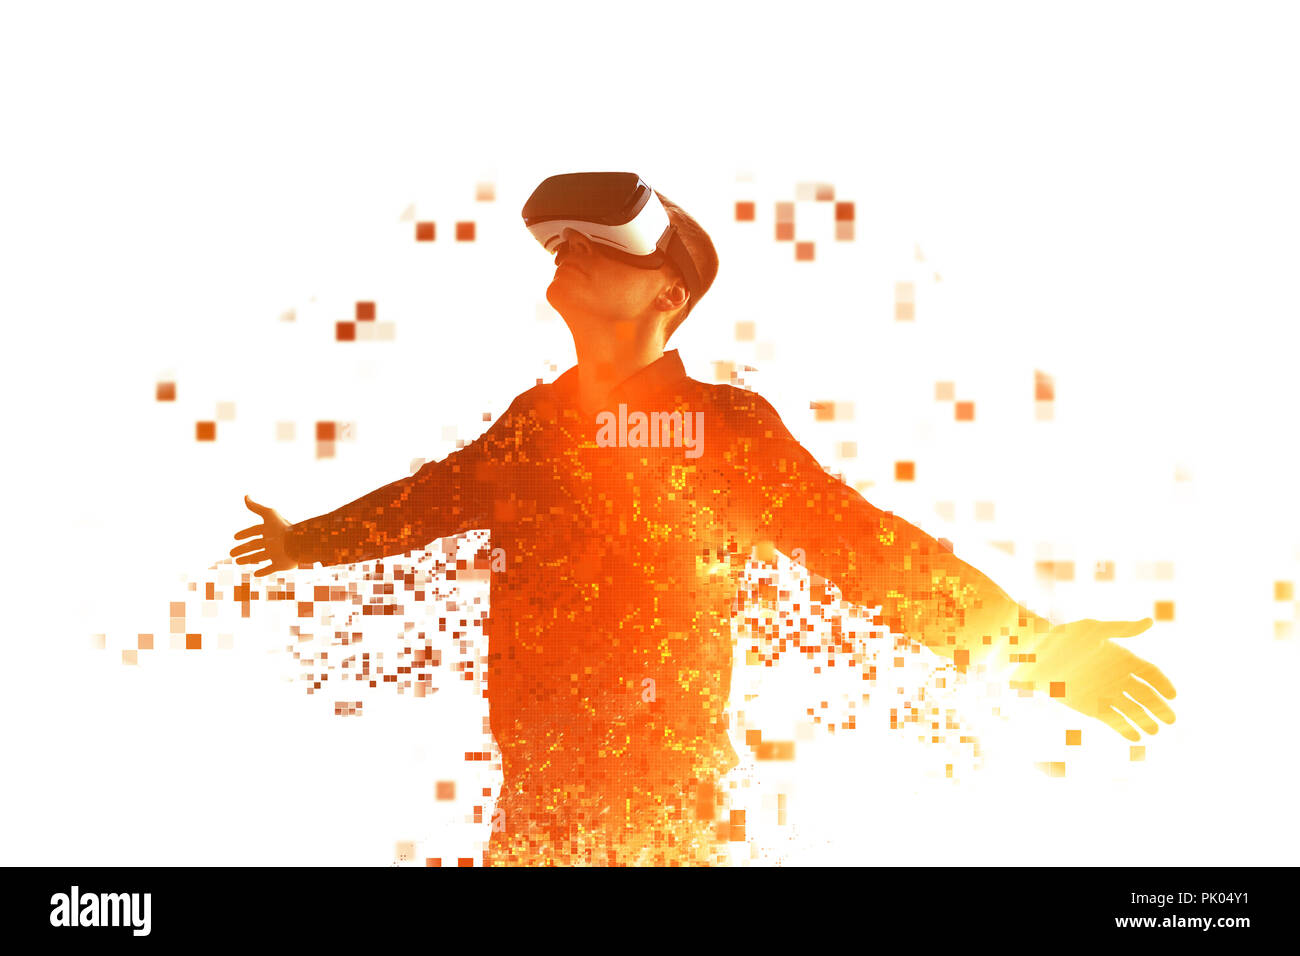 A person in virtual reality glasses flies to pixels. The concept of new technologies and technologies of the future. VR glasses. - Stock Image